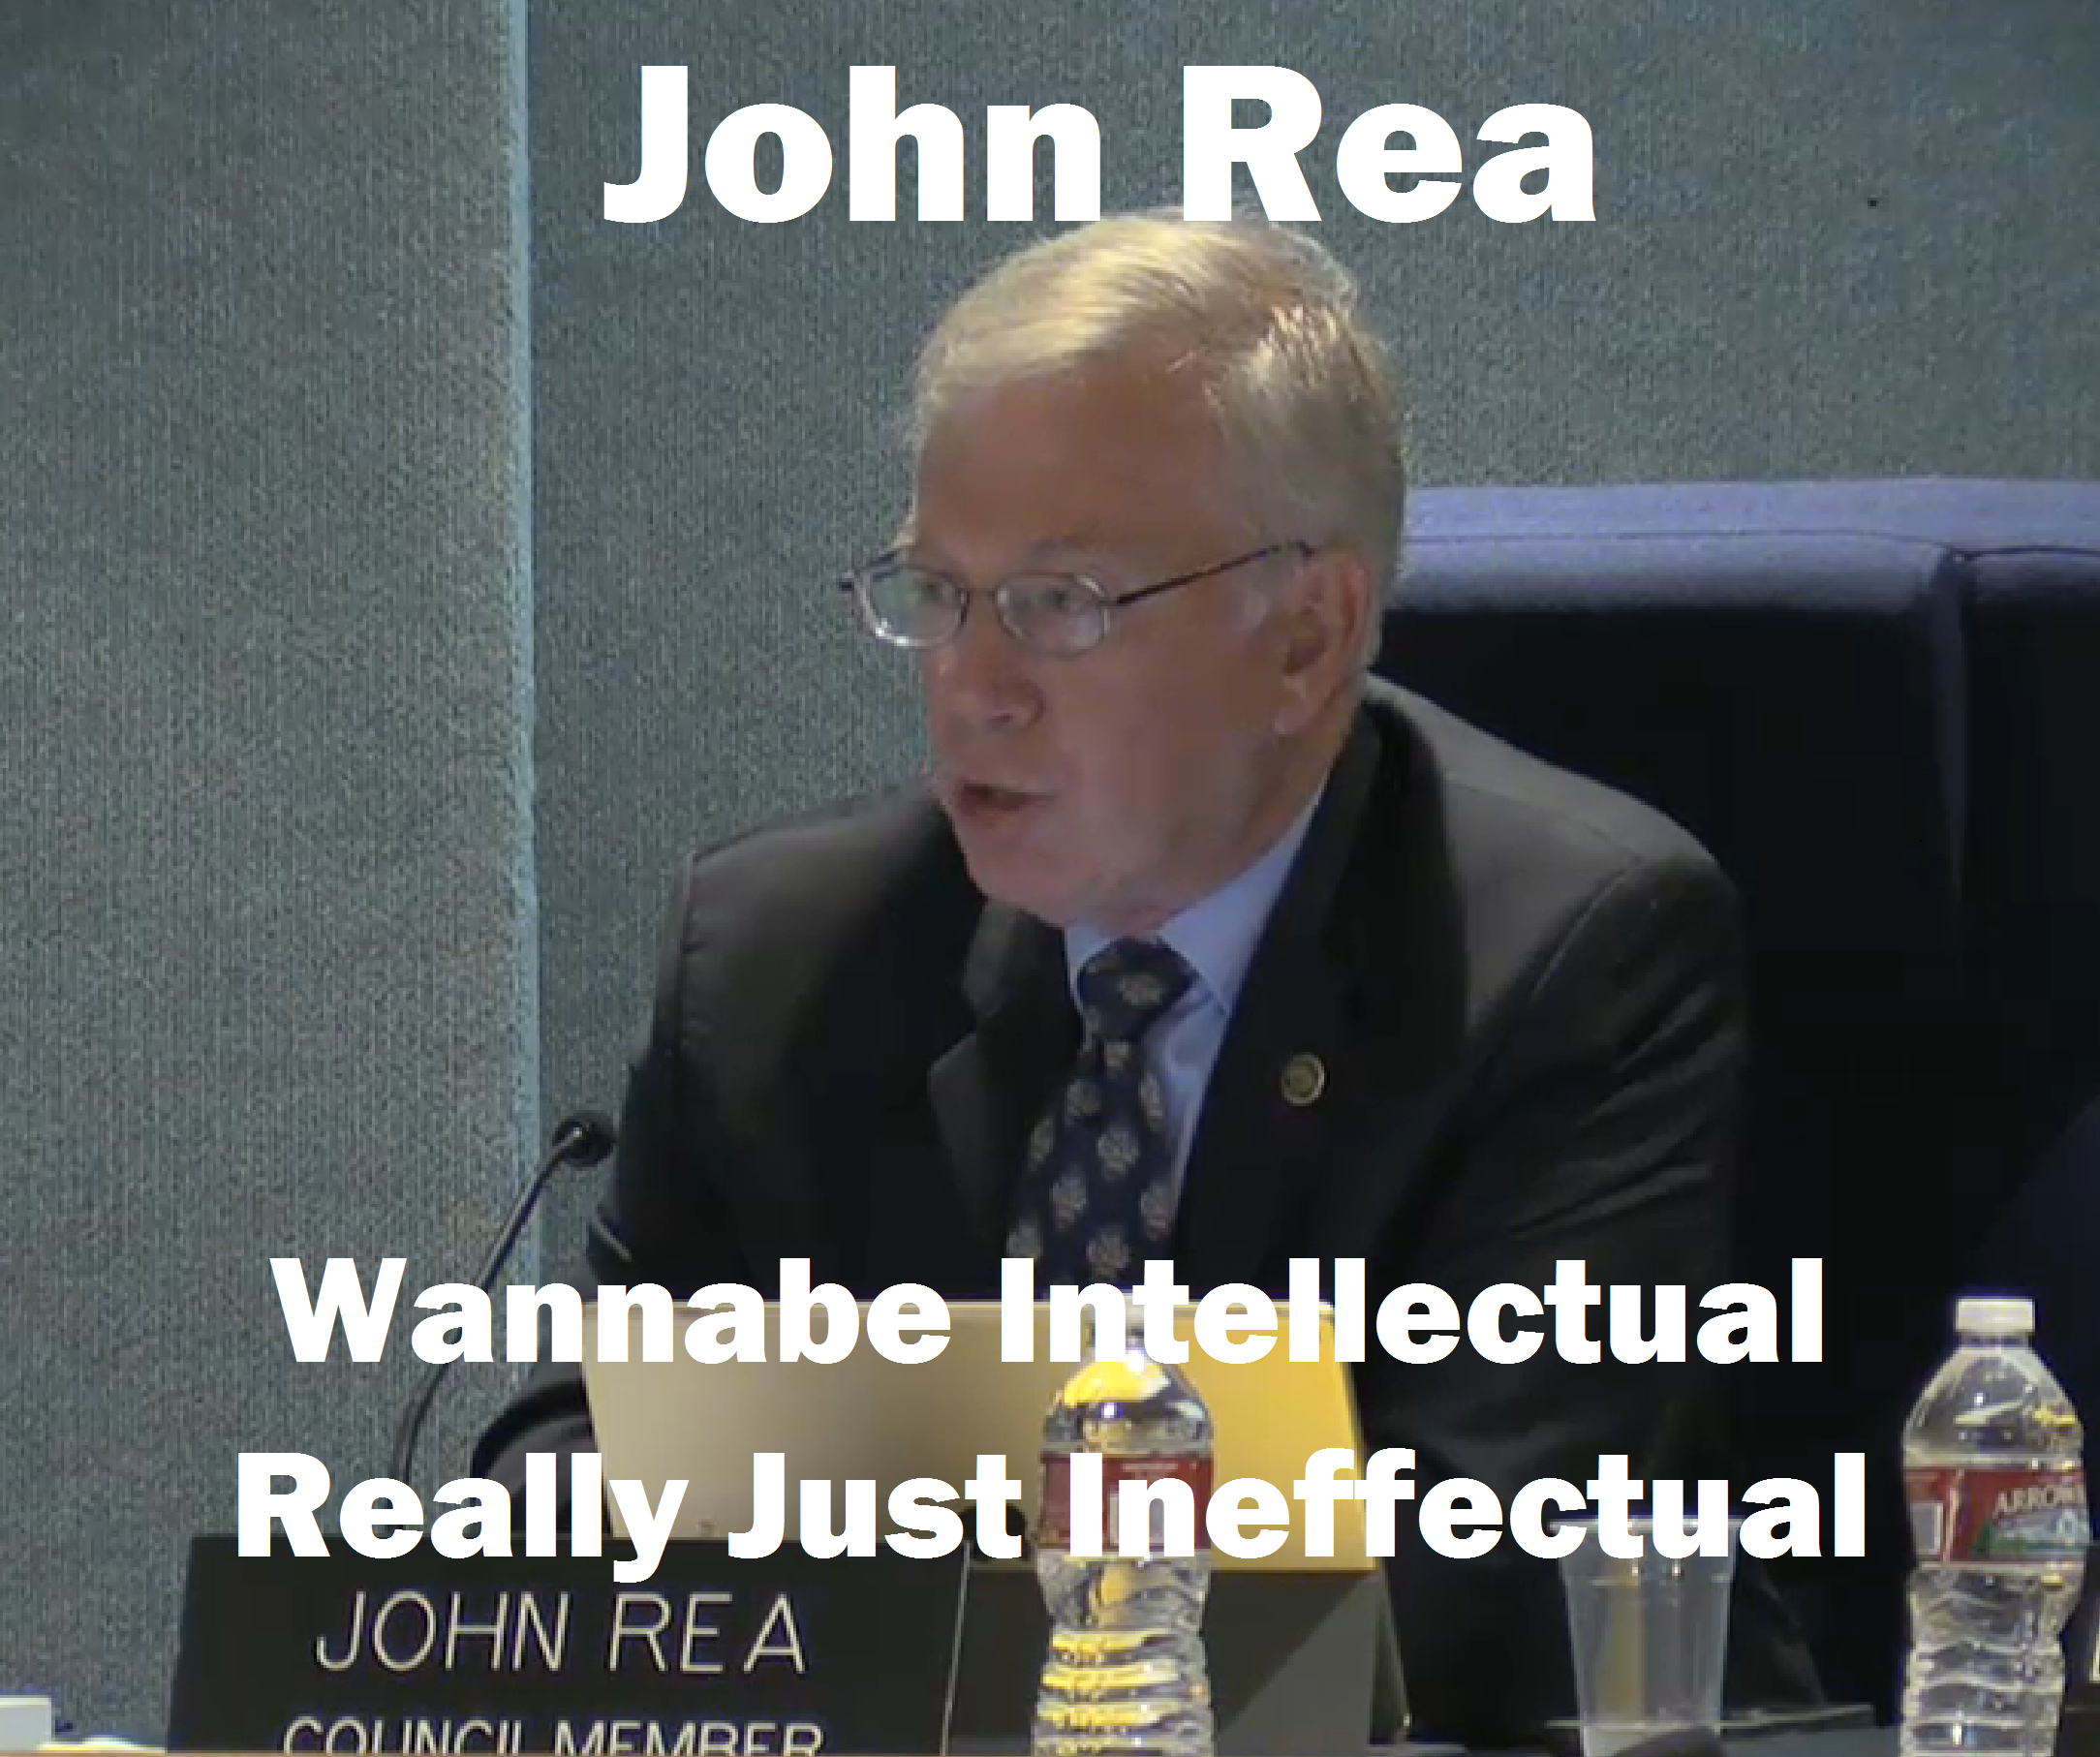 John Rea - another retiree with too much time on his hands but too little loyalty to PVE residents on his mind